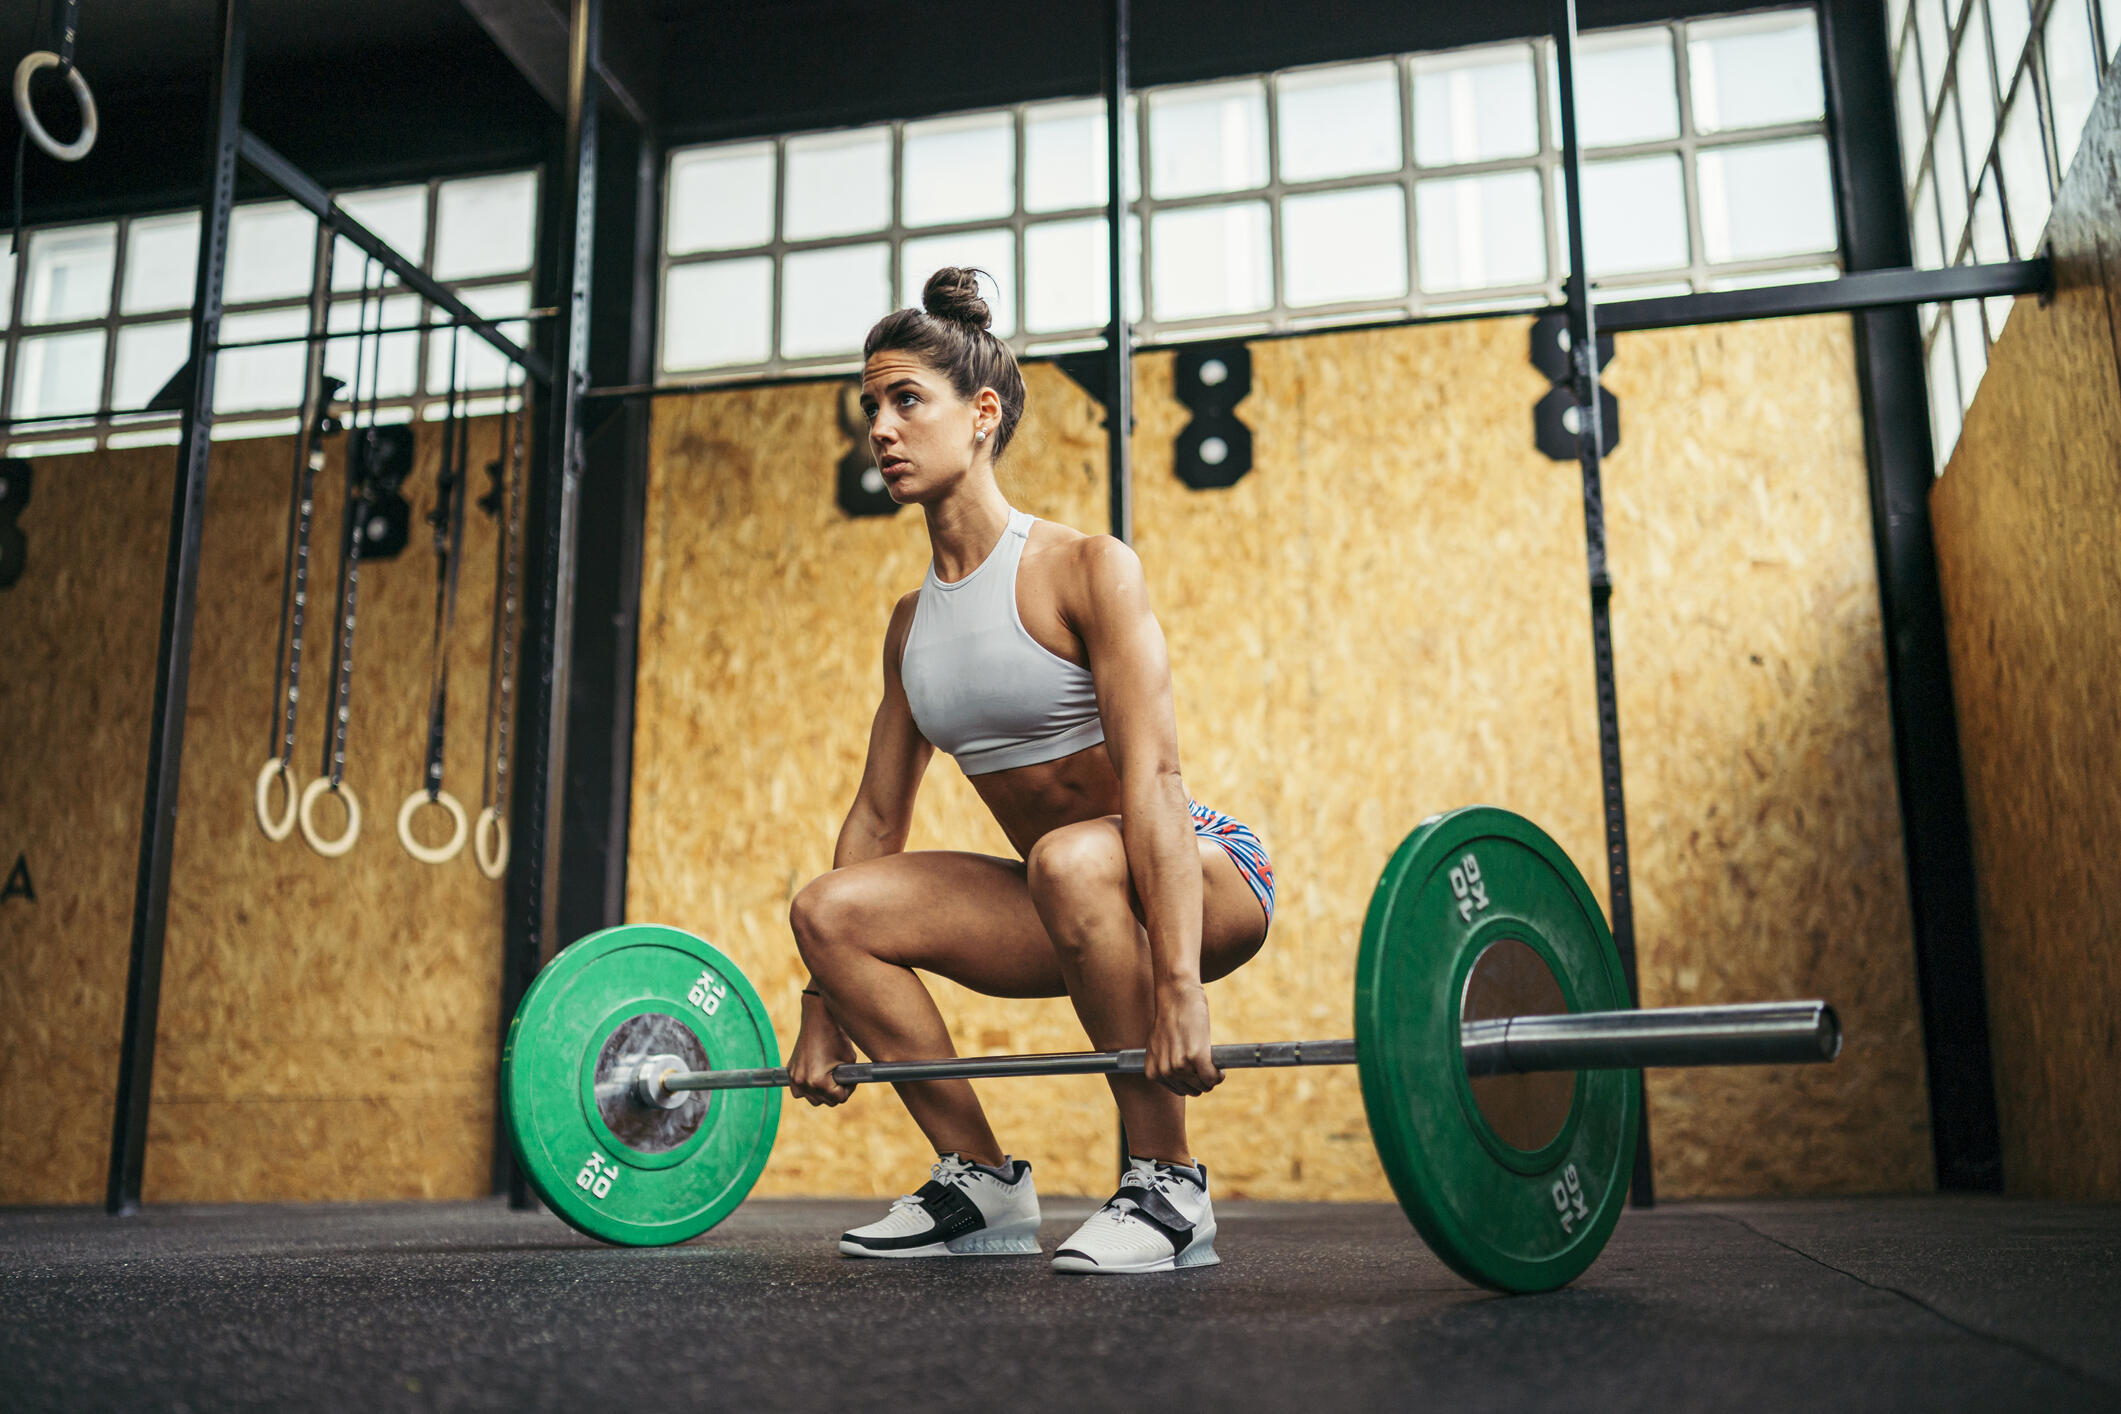 A young woman preparing to perform a deadlift in a gym.